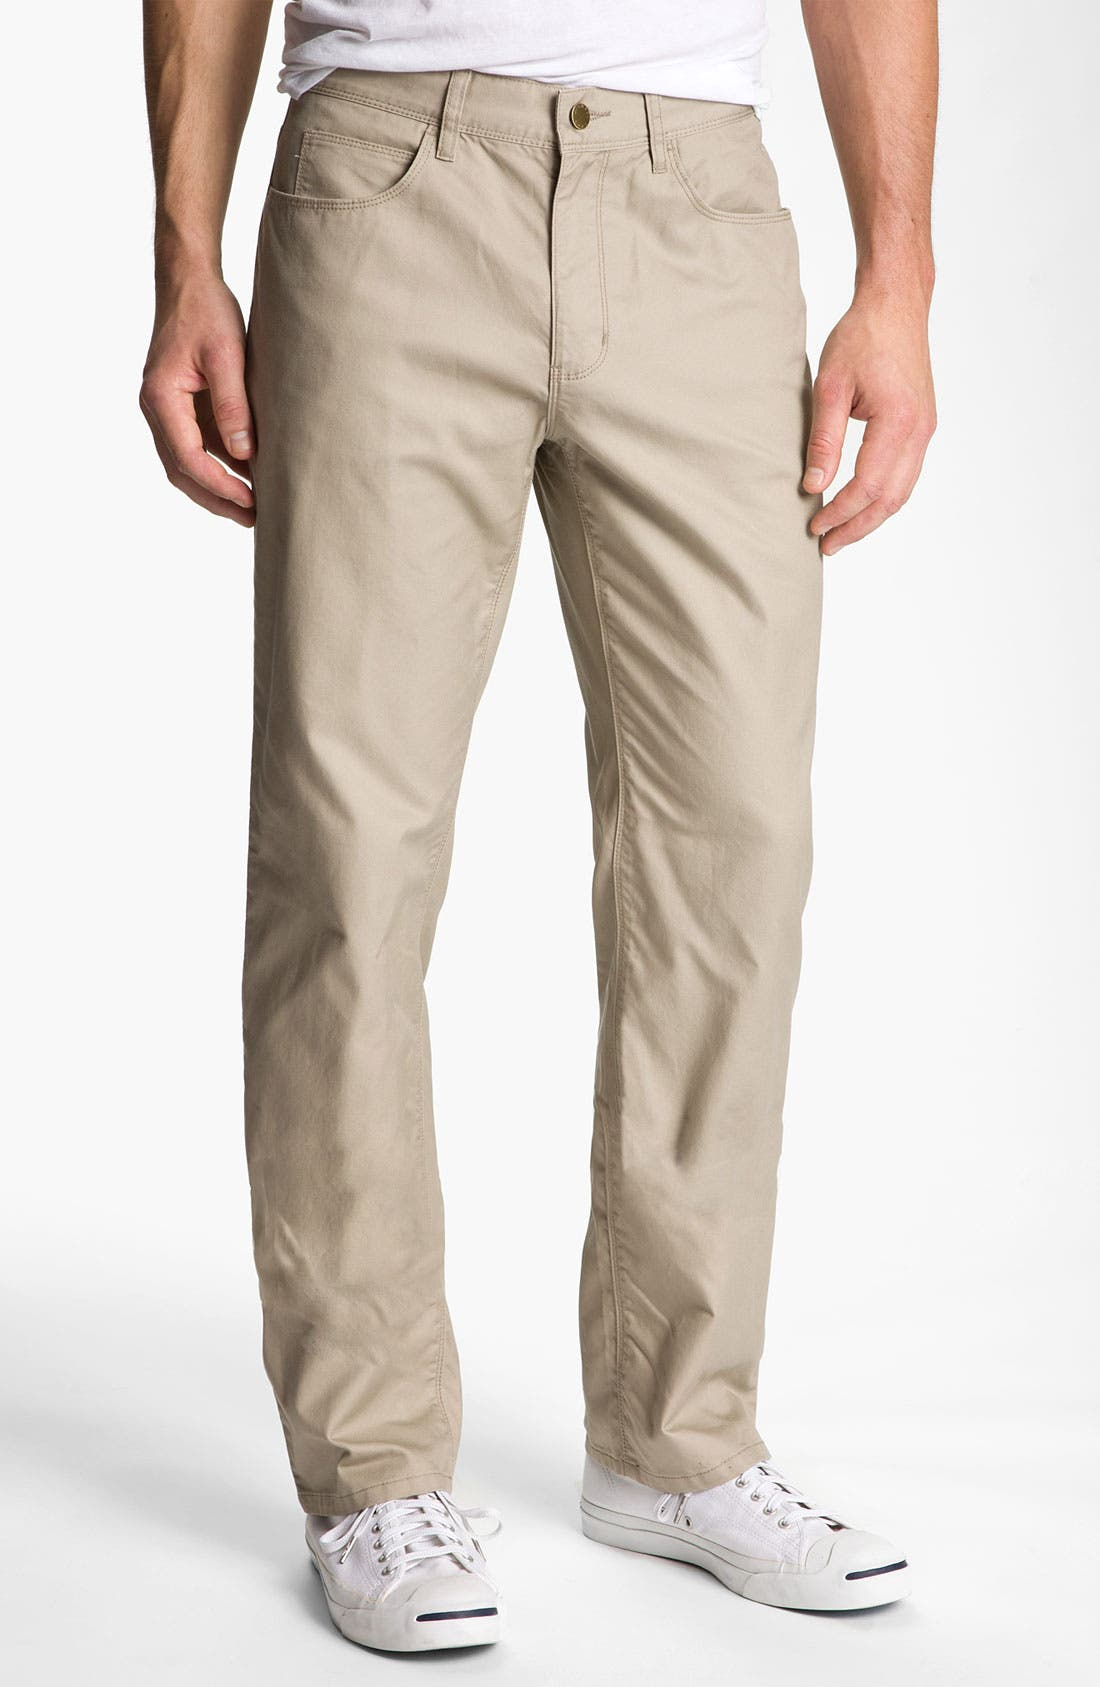 Michael Kors Classic Fit Straight Leg Pants